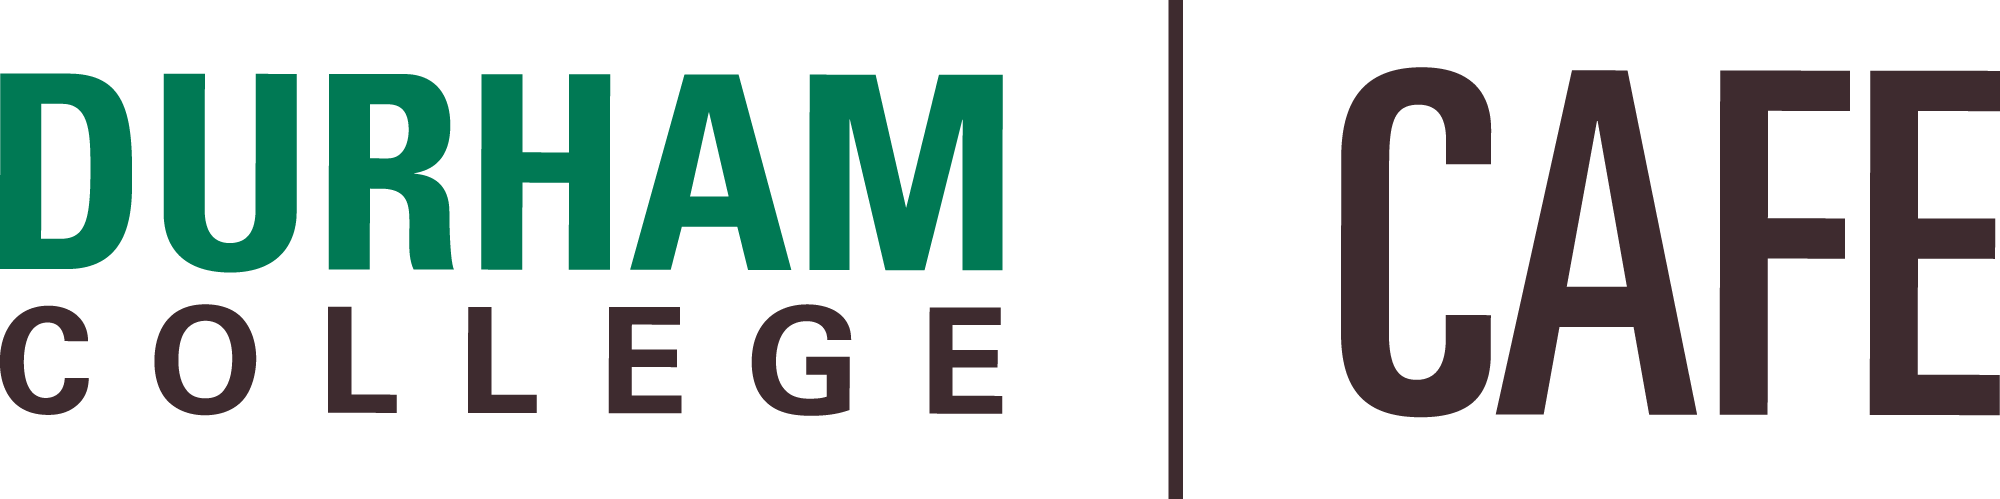 Durham College CAFE Logo Stacked